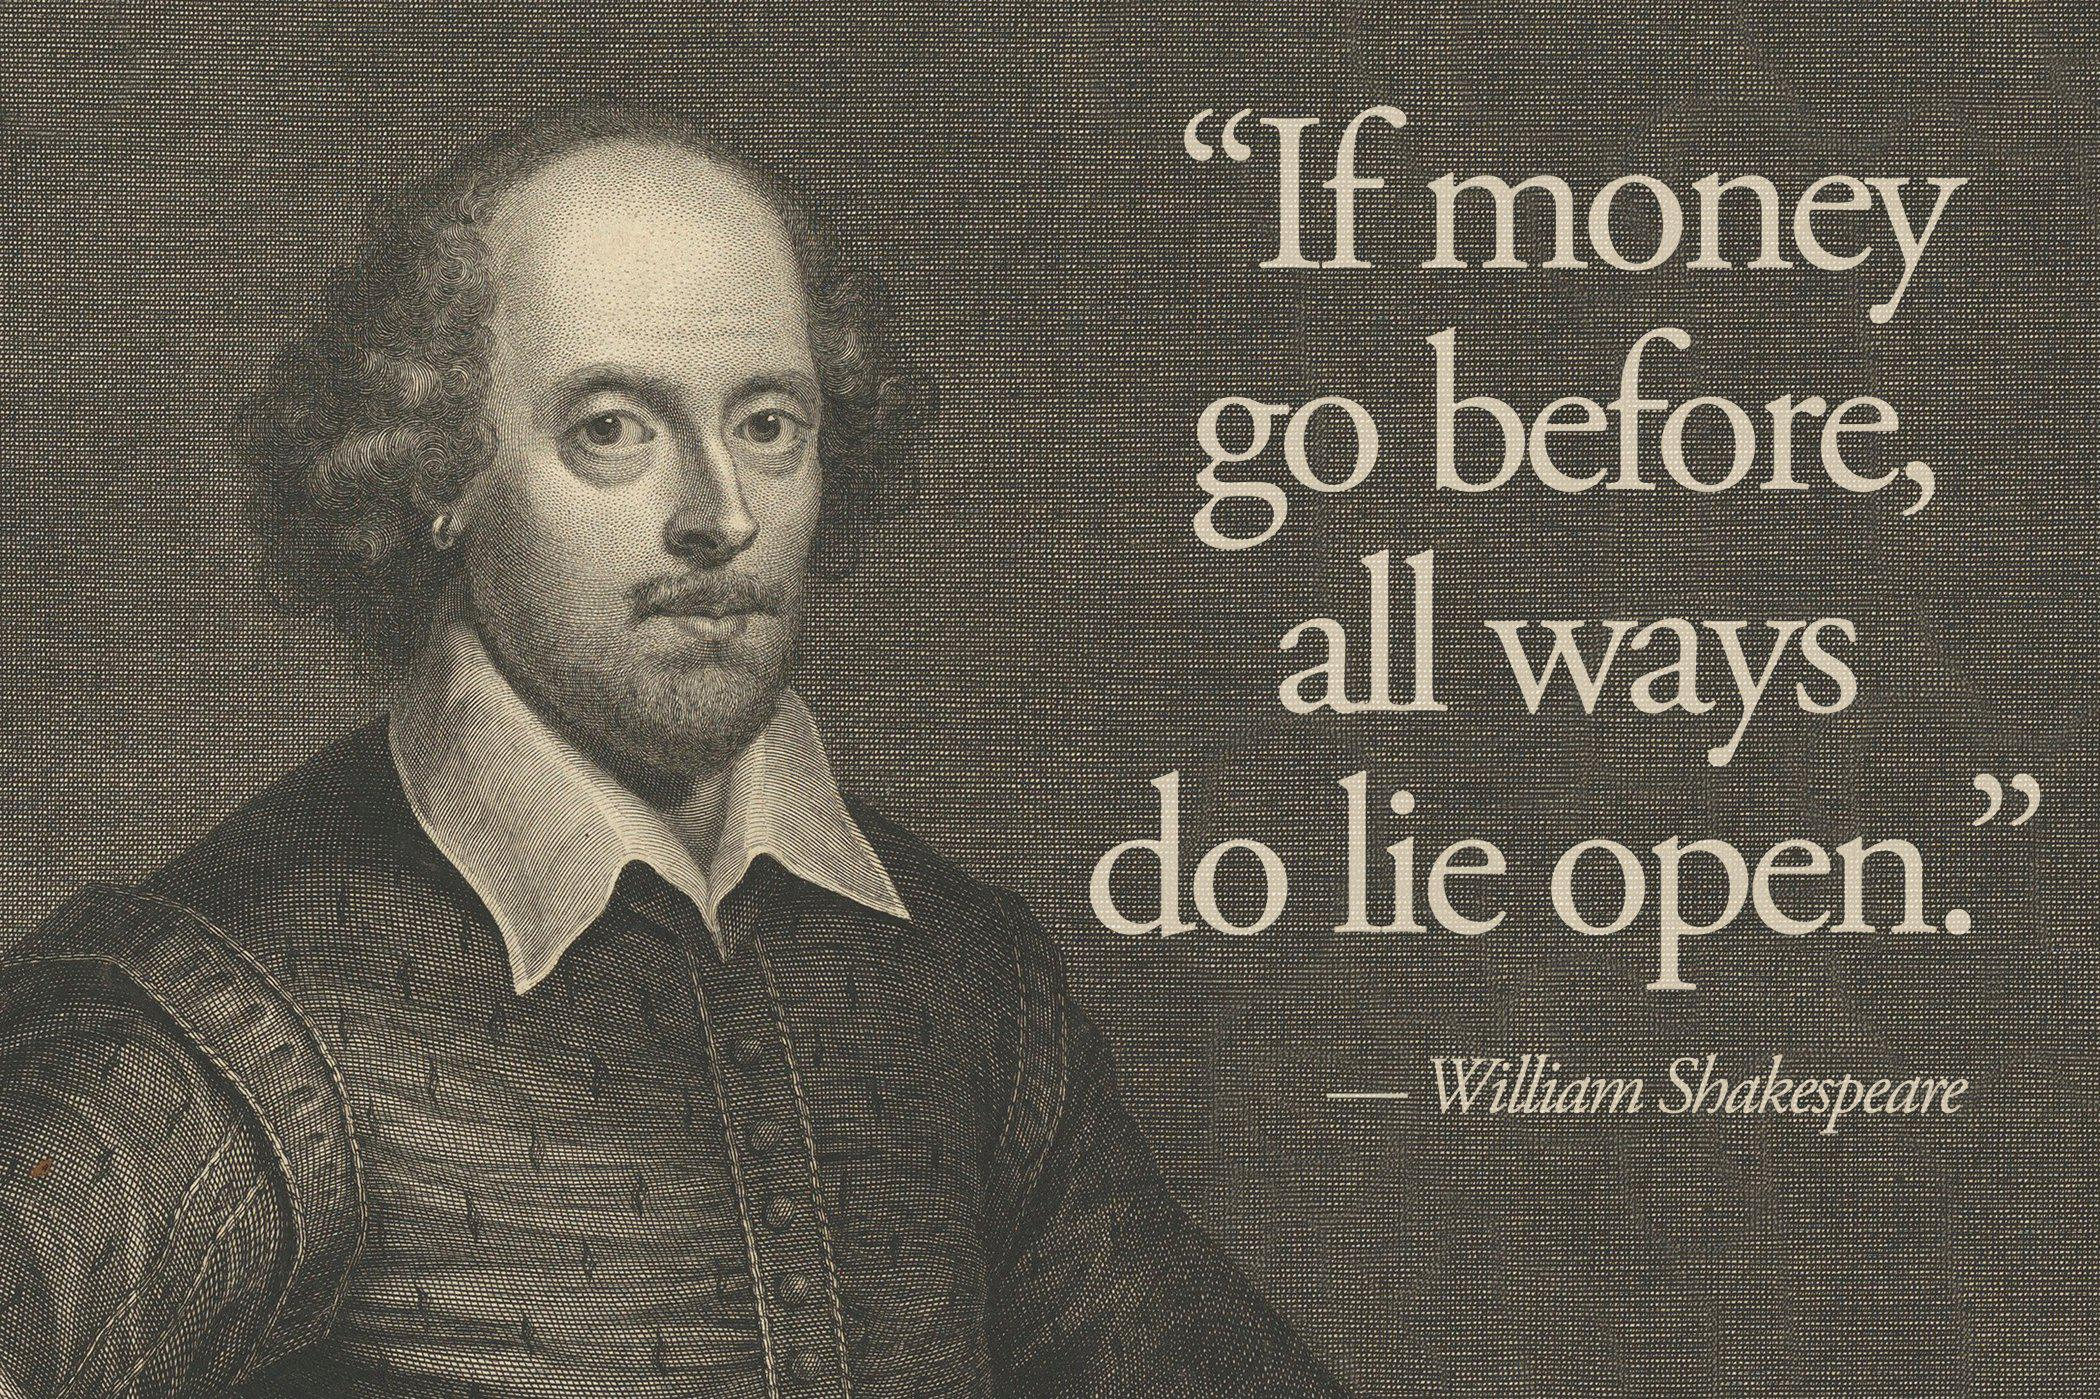 """If money go before, all ways do lie open."" – William Shakespeare [2100X1399]"